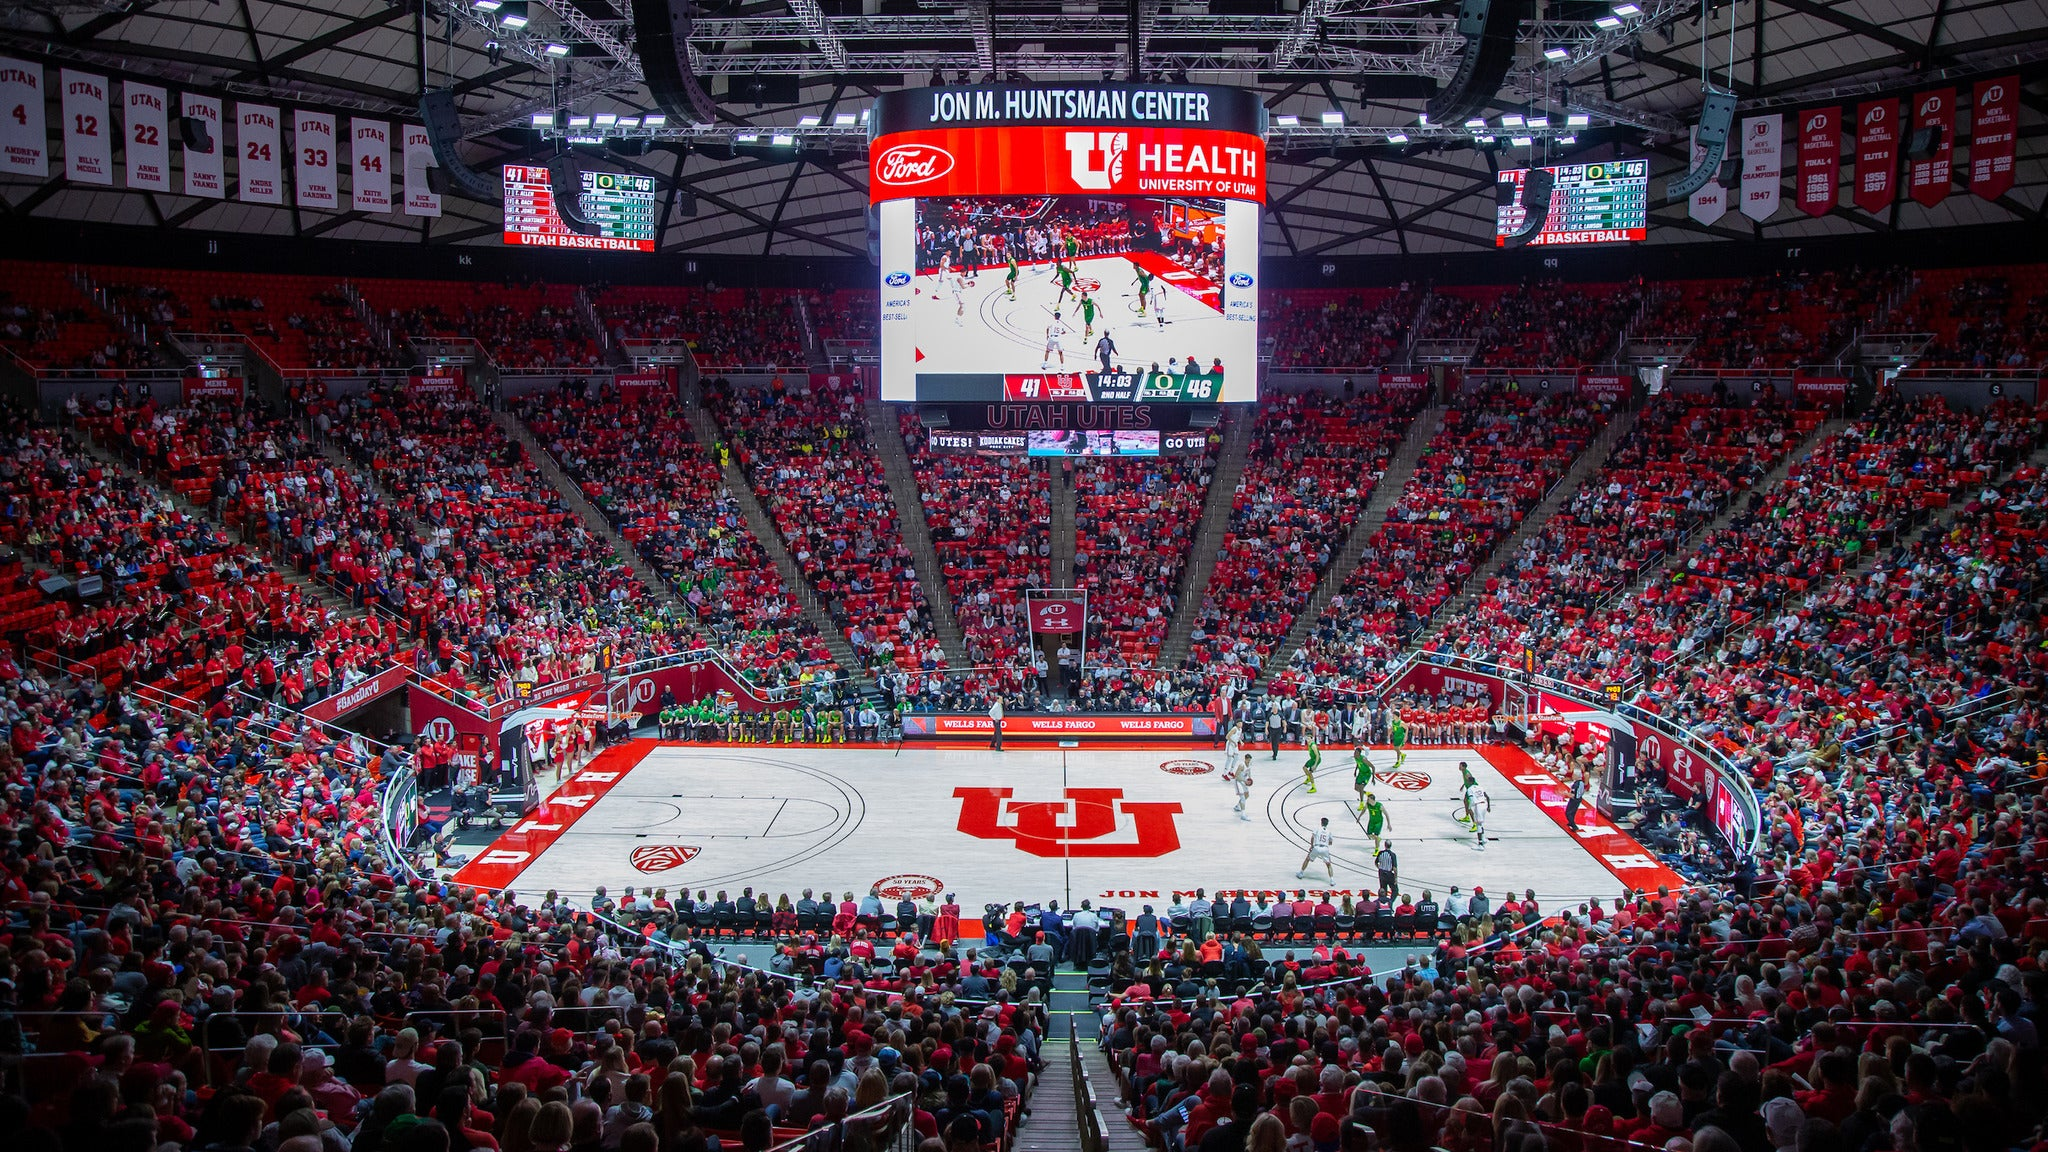 20-21 Utah Men's Basketball Full Season Tickets